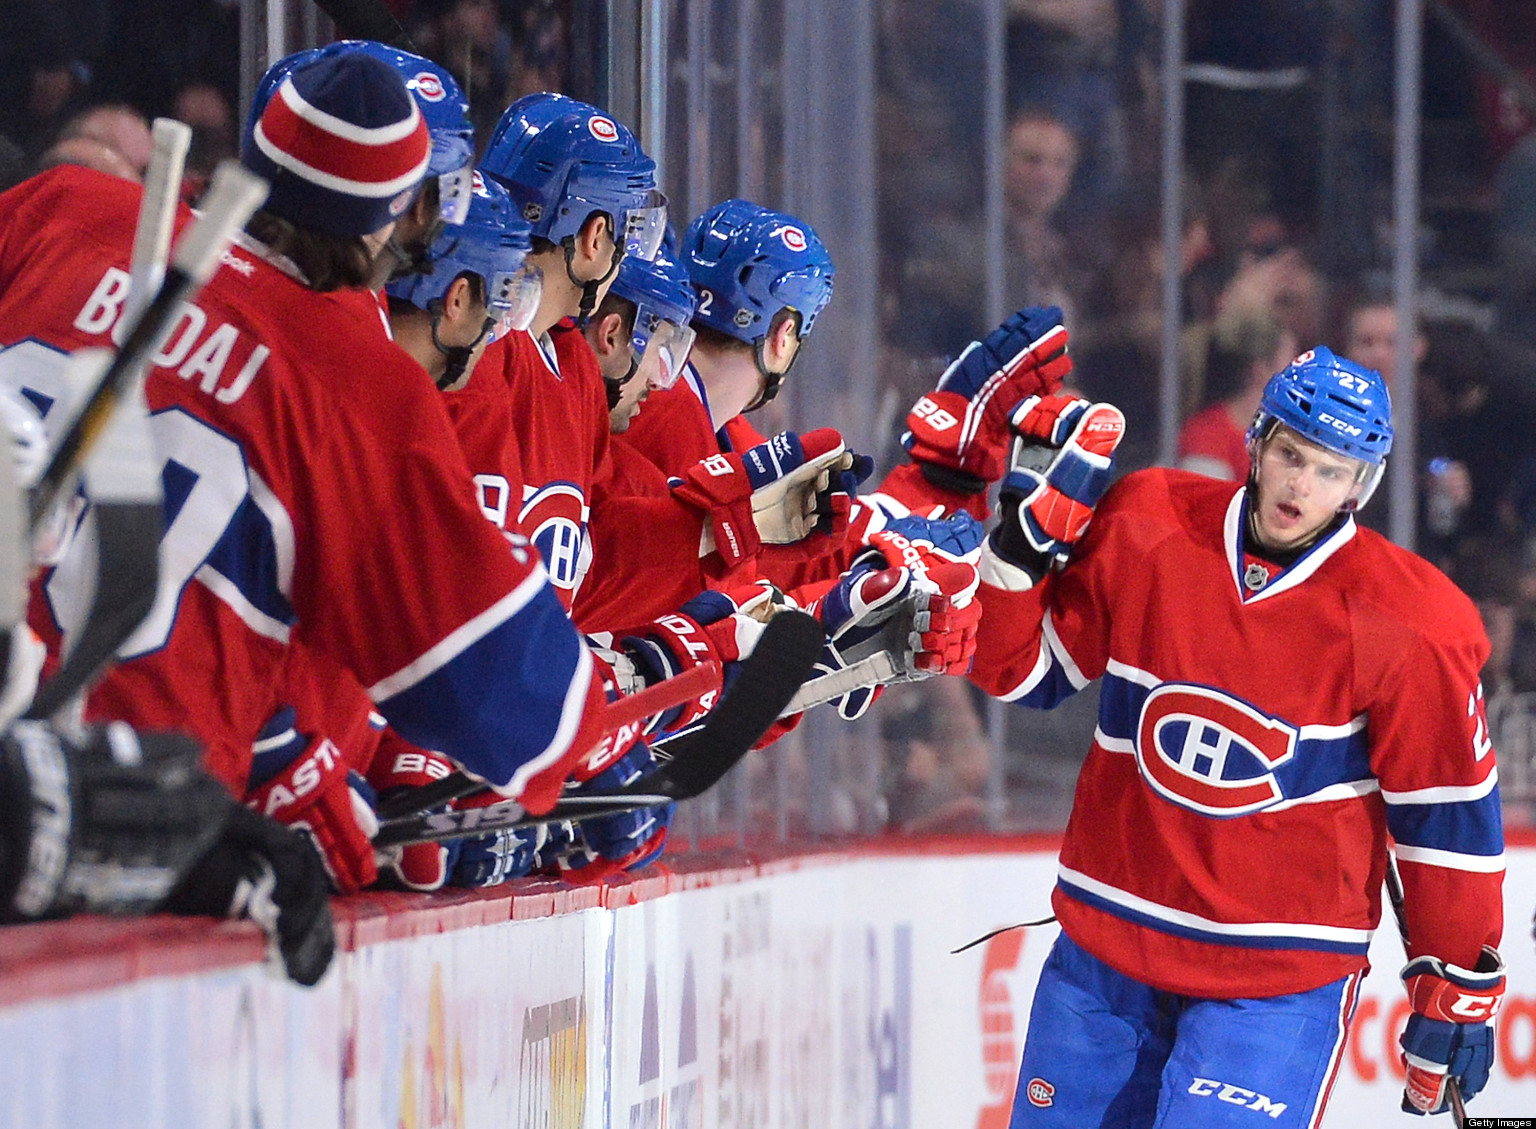 MONTREAL, CANADA - APRIL 15: Alex Galchenyuk #27 of the Montreal Canadiens celebrate a goal with teammates during the NHL game against the Philadelphia Flyers on April 15, 2013 at the Bell Centre in Montreal, Quebec, Canada. (Photo by Francois Lacasse/NHLI via Getty Images)